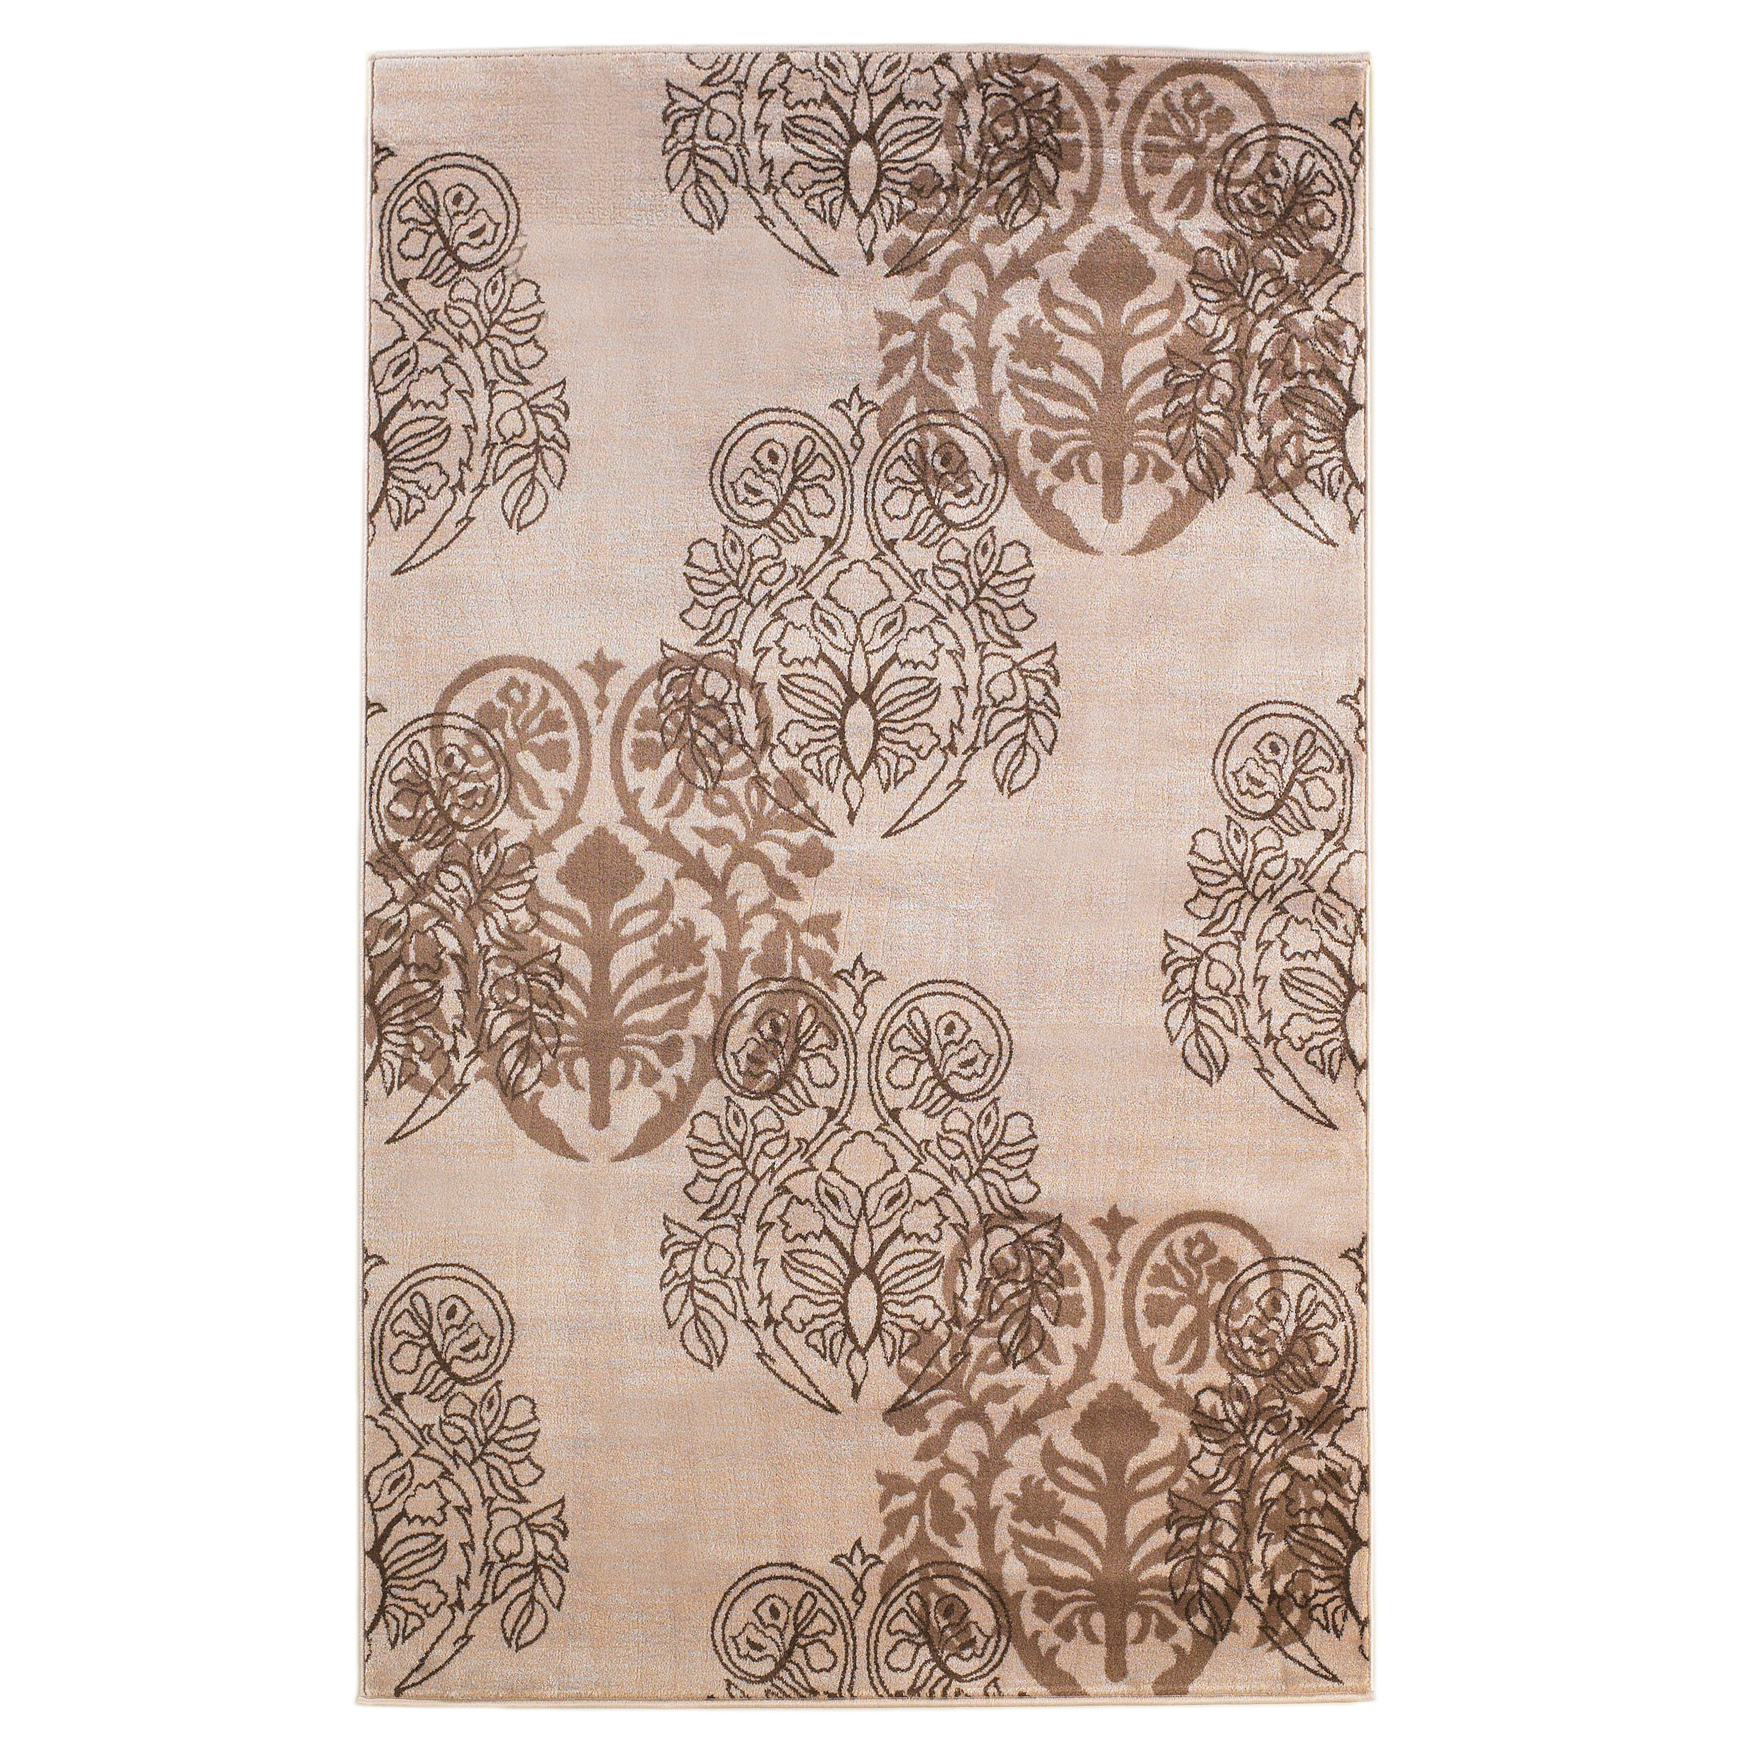 Milan Ivory/Brown 5'X8' Area Rug, IVORY BROWN